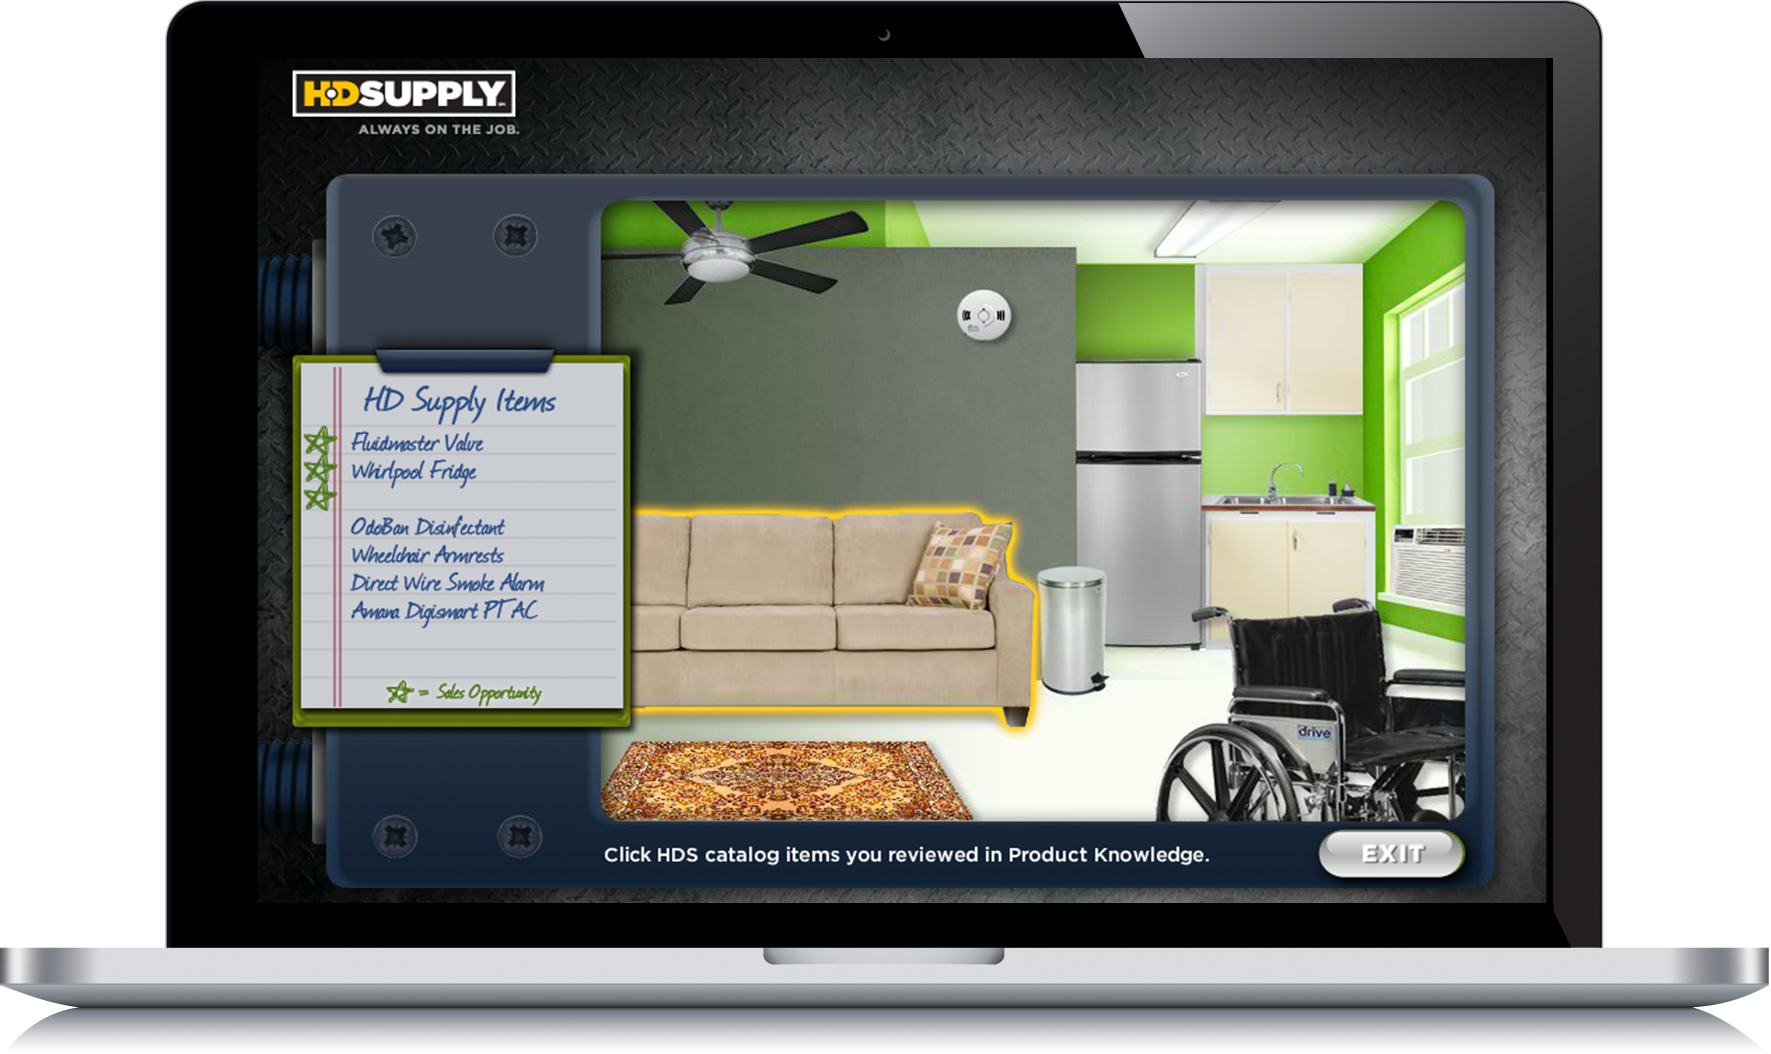 HD Supply Commercial Sales Case Study